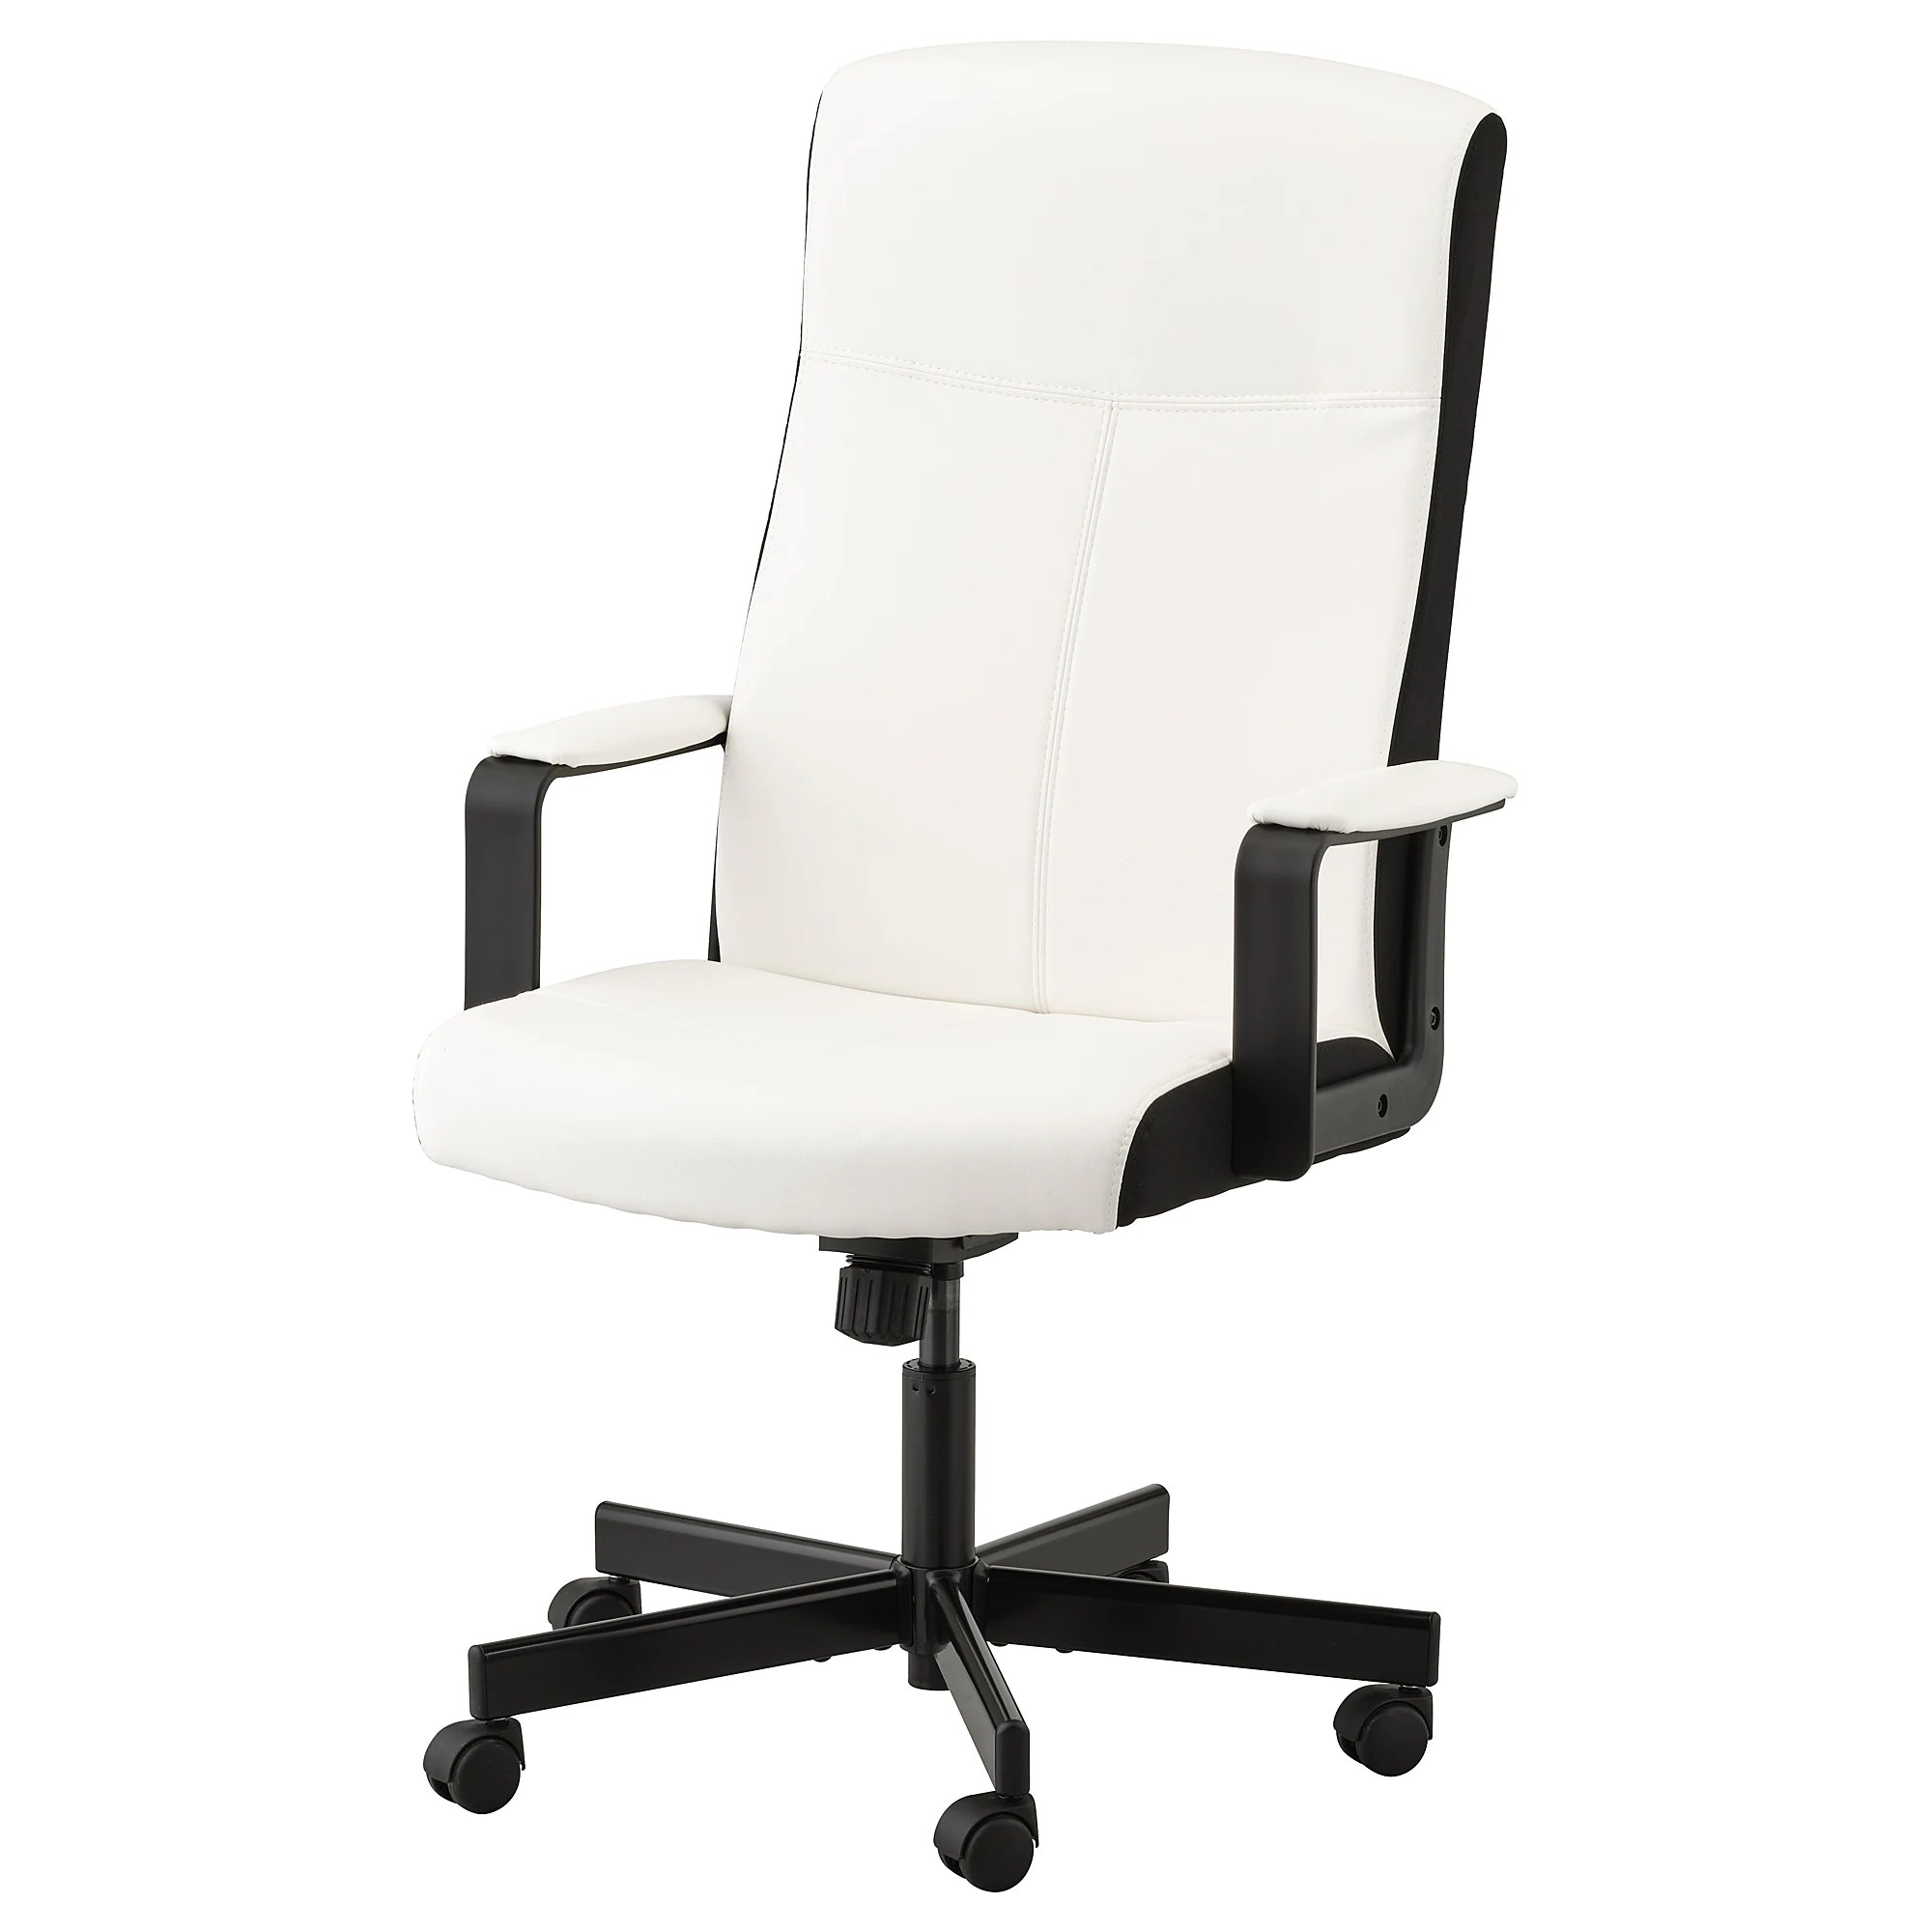 How To Adjust Office Chair Millberget Swivel Chair Kimstad White